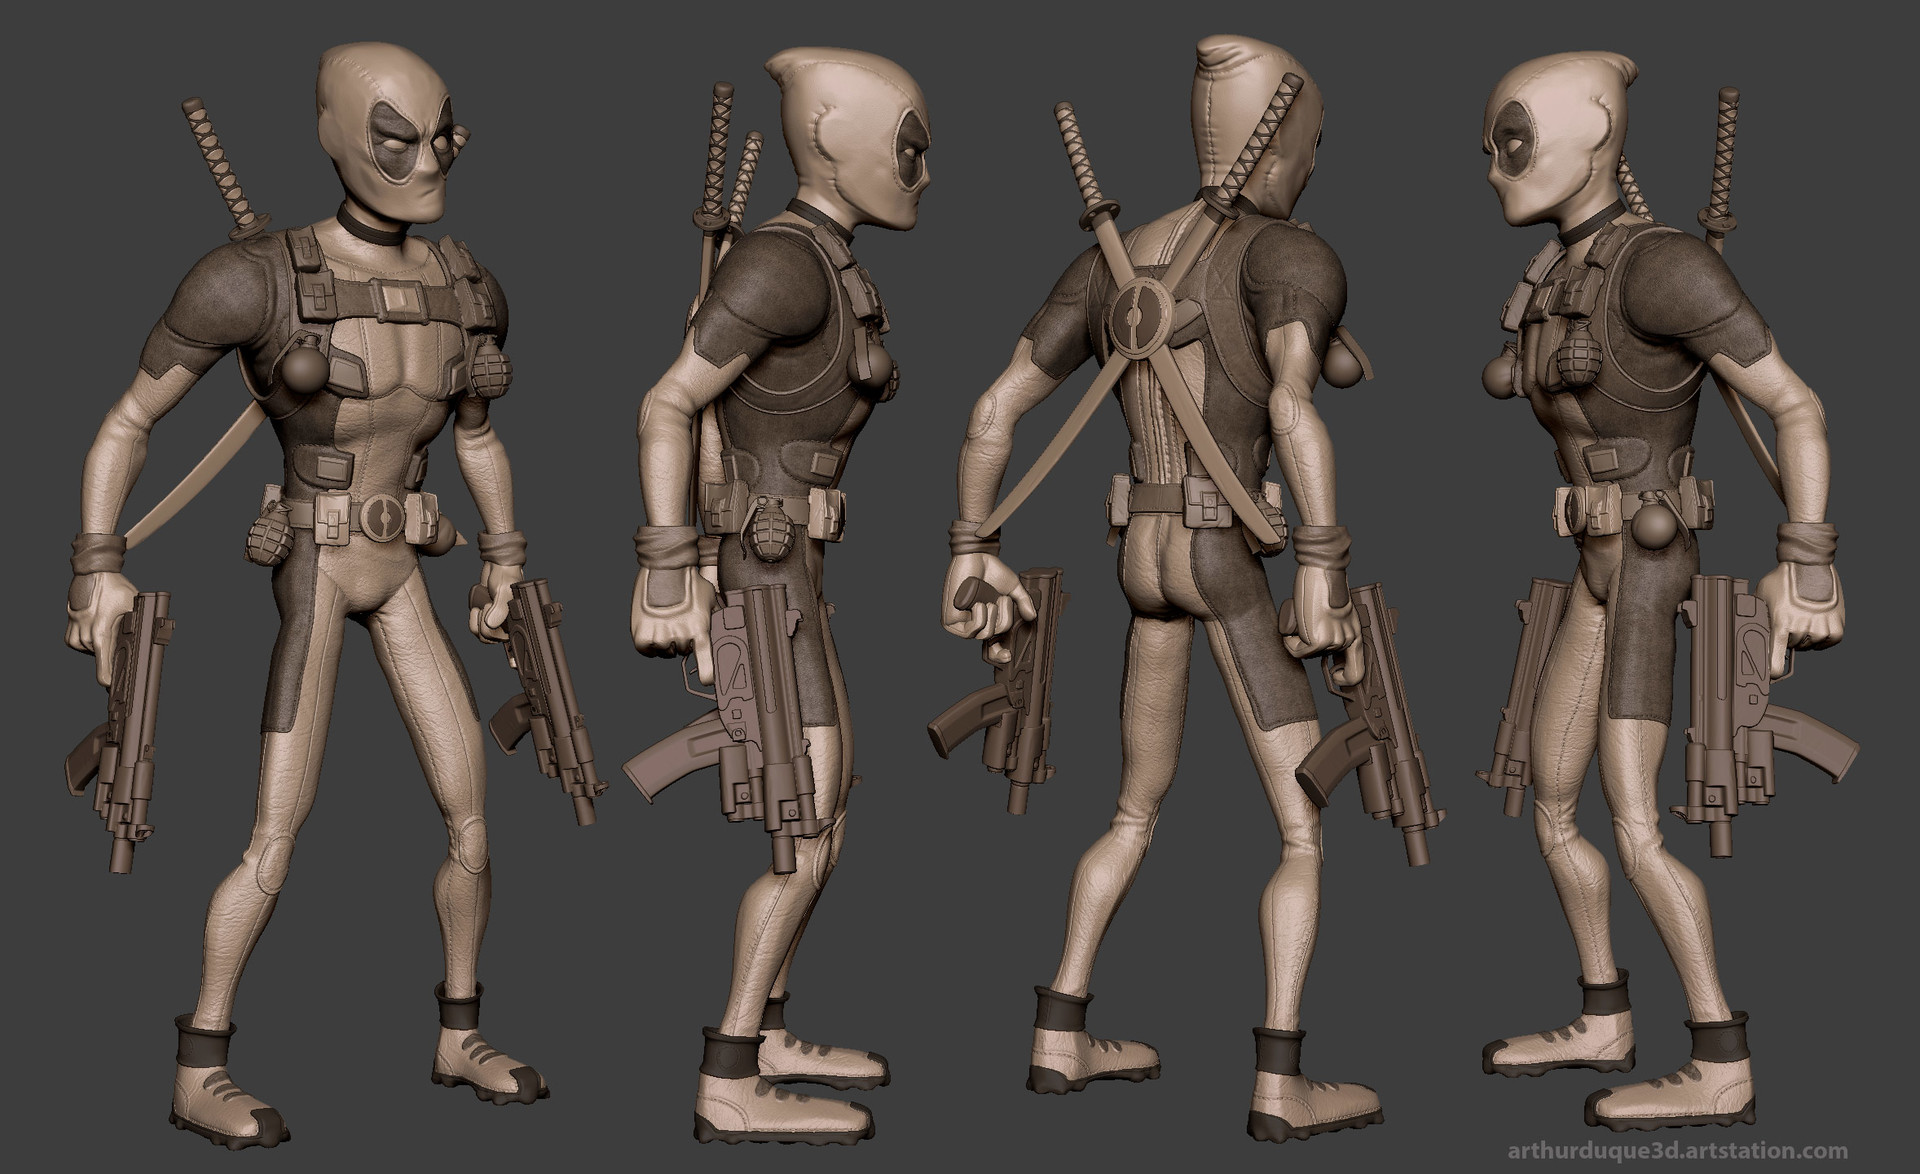 Arthur duque deadpool model zbrush